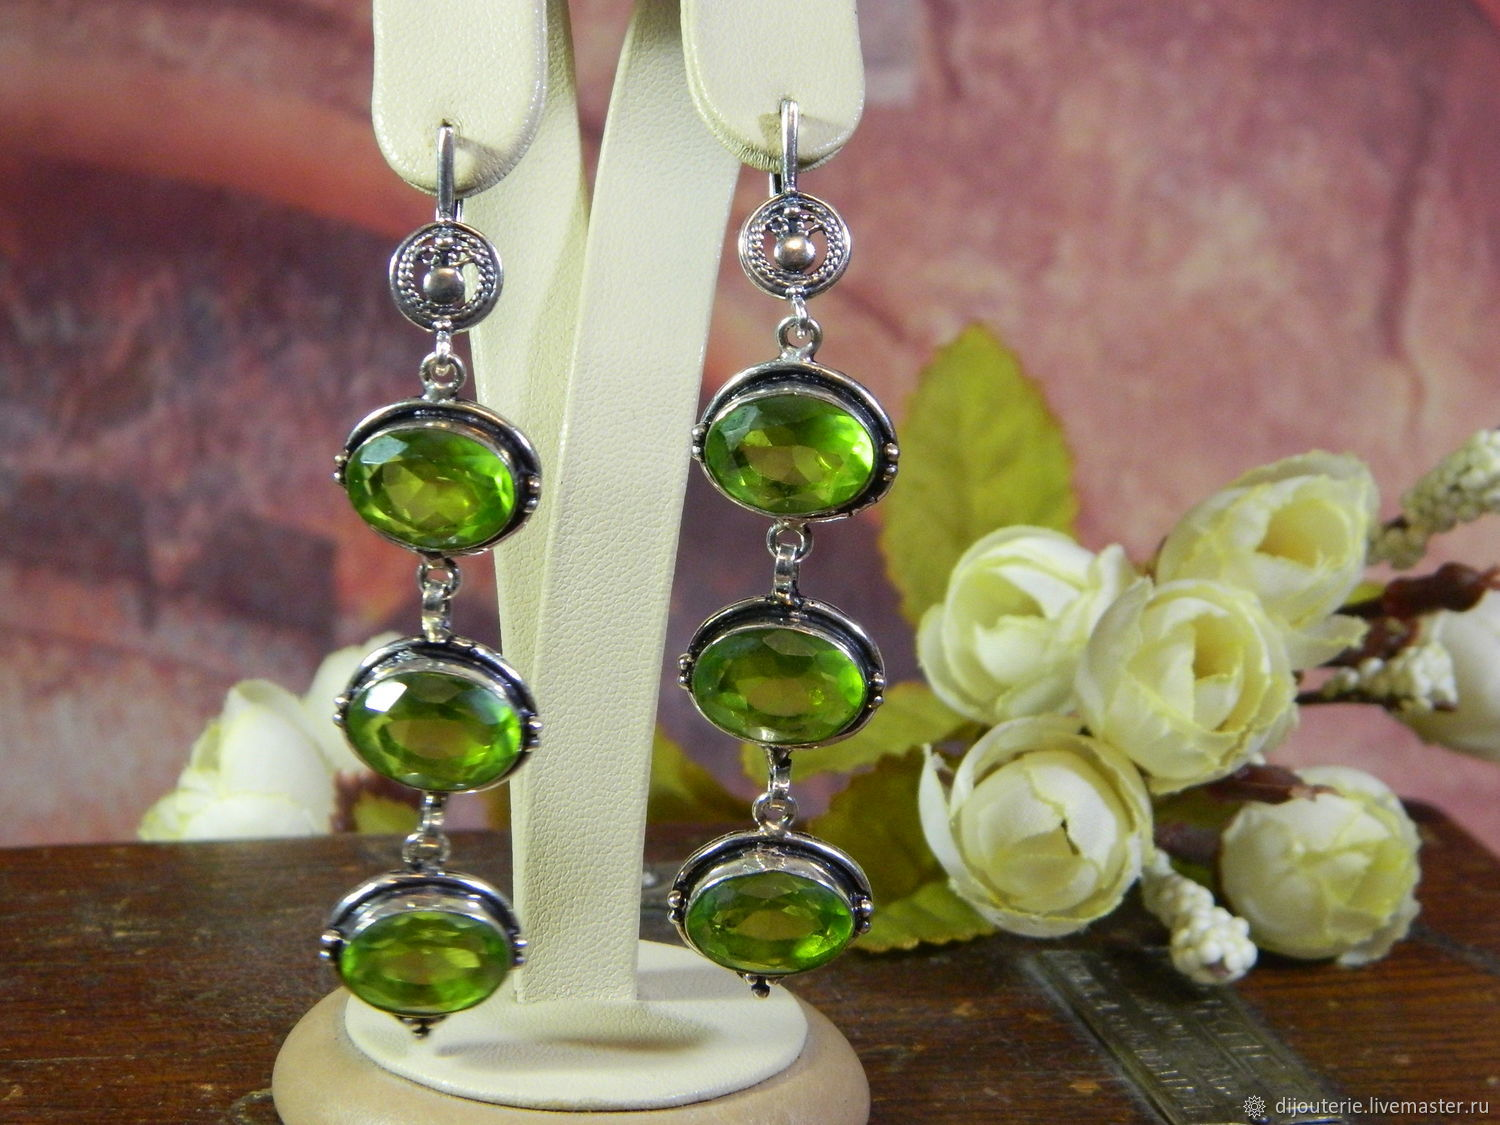 Long earrings chrysolite (peridot), Earrings, Saratov,  Фото №1